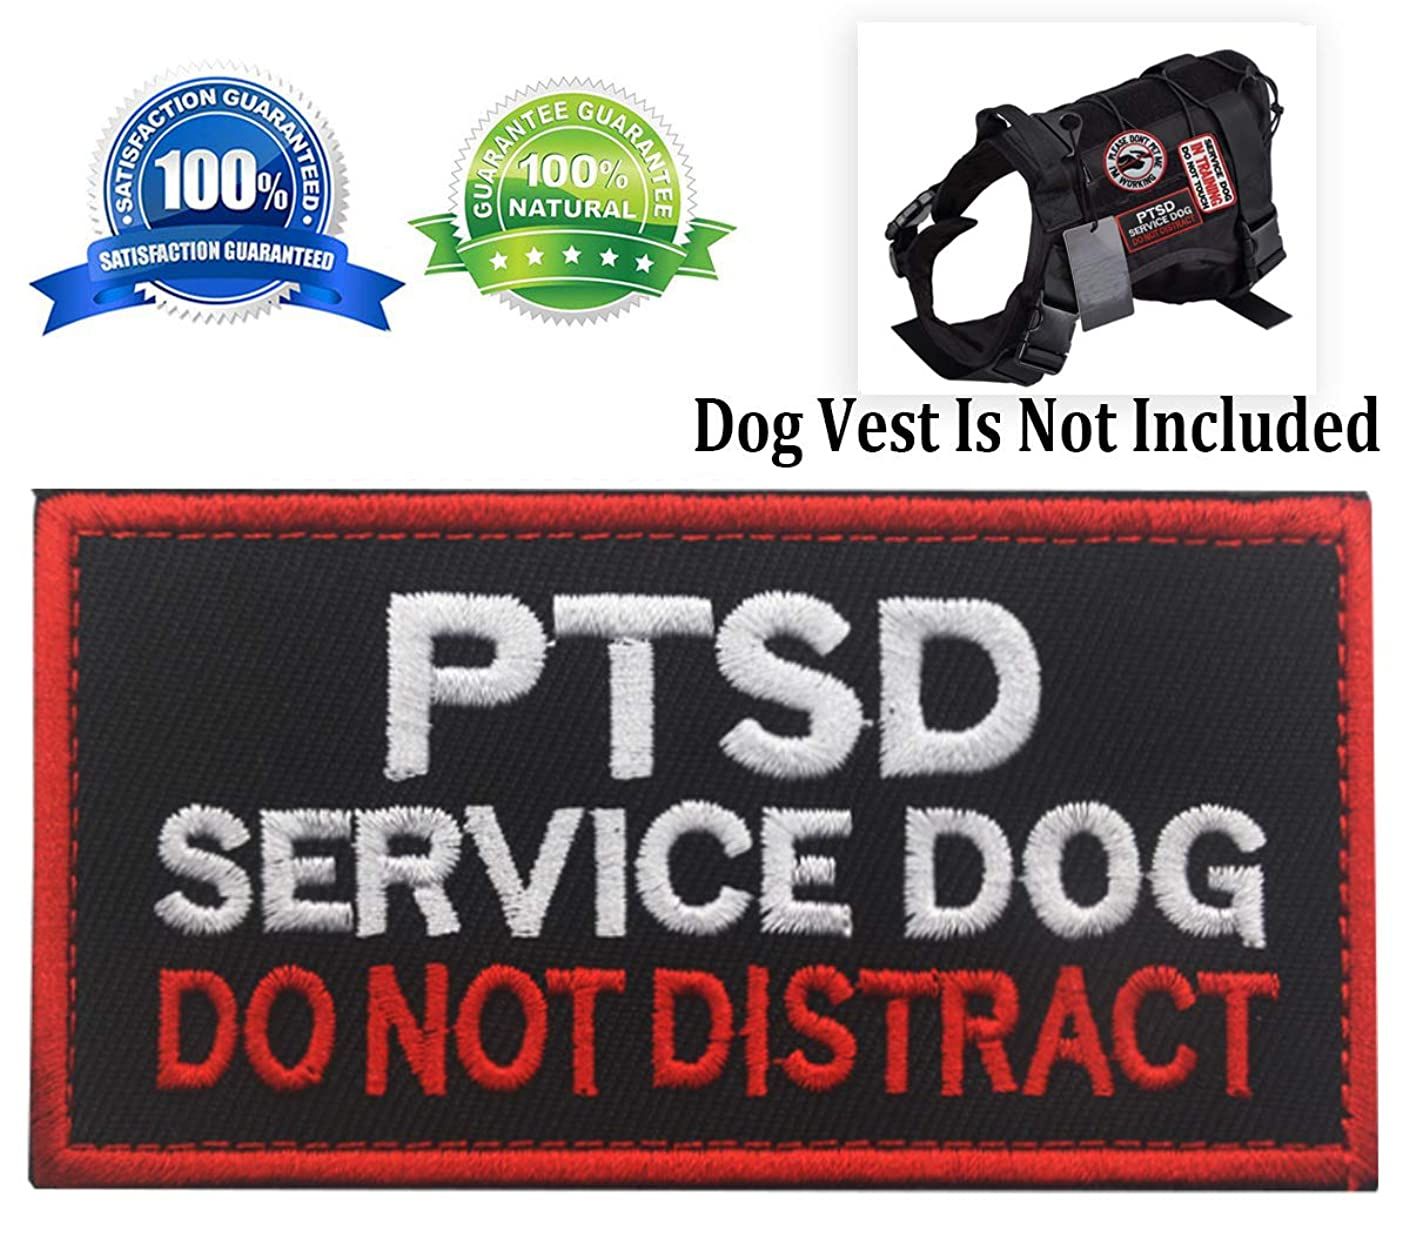 Service Dog Patch PTSD Do Not Distract Patches Vests/Harnesses Applique Embroidered Fastener Hook & Loop Emblem(PTSD Service Dog-Black-3)